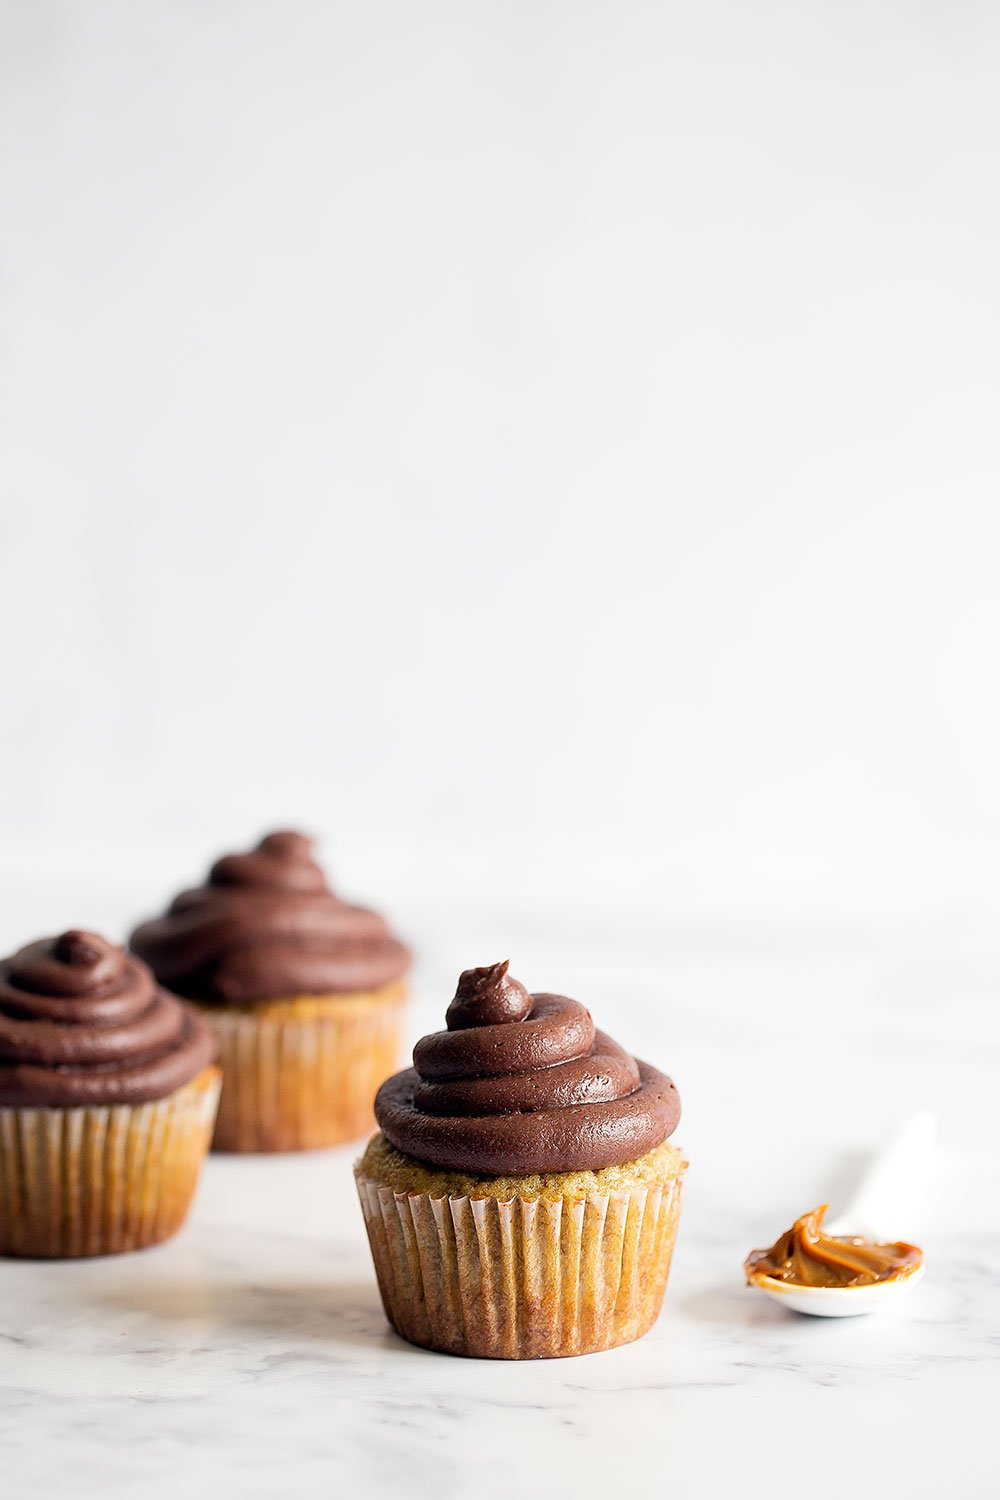 Dulce de Leche Banana Cupcakes with Chocolate Frosting are out of this world moist and flavorful!